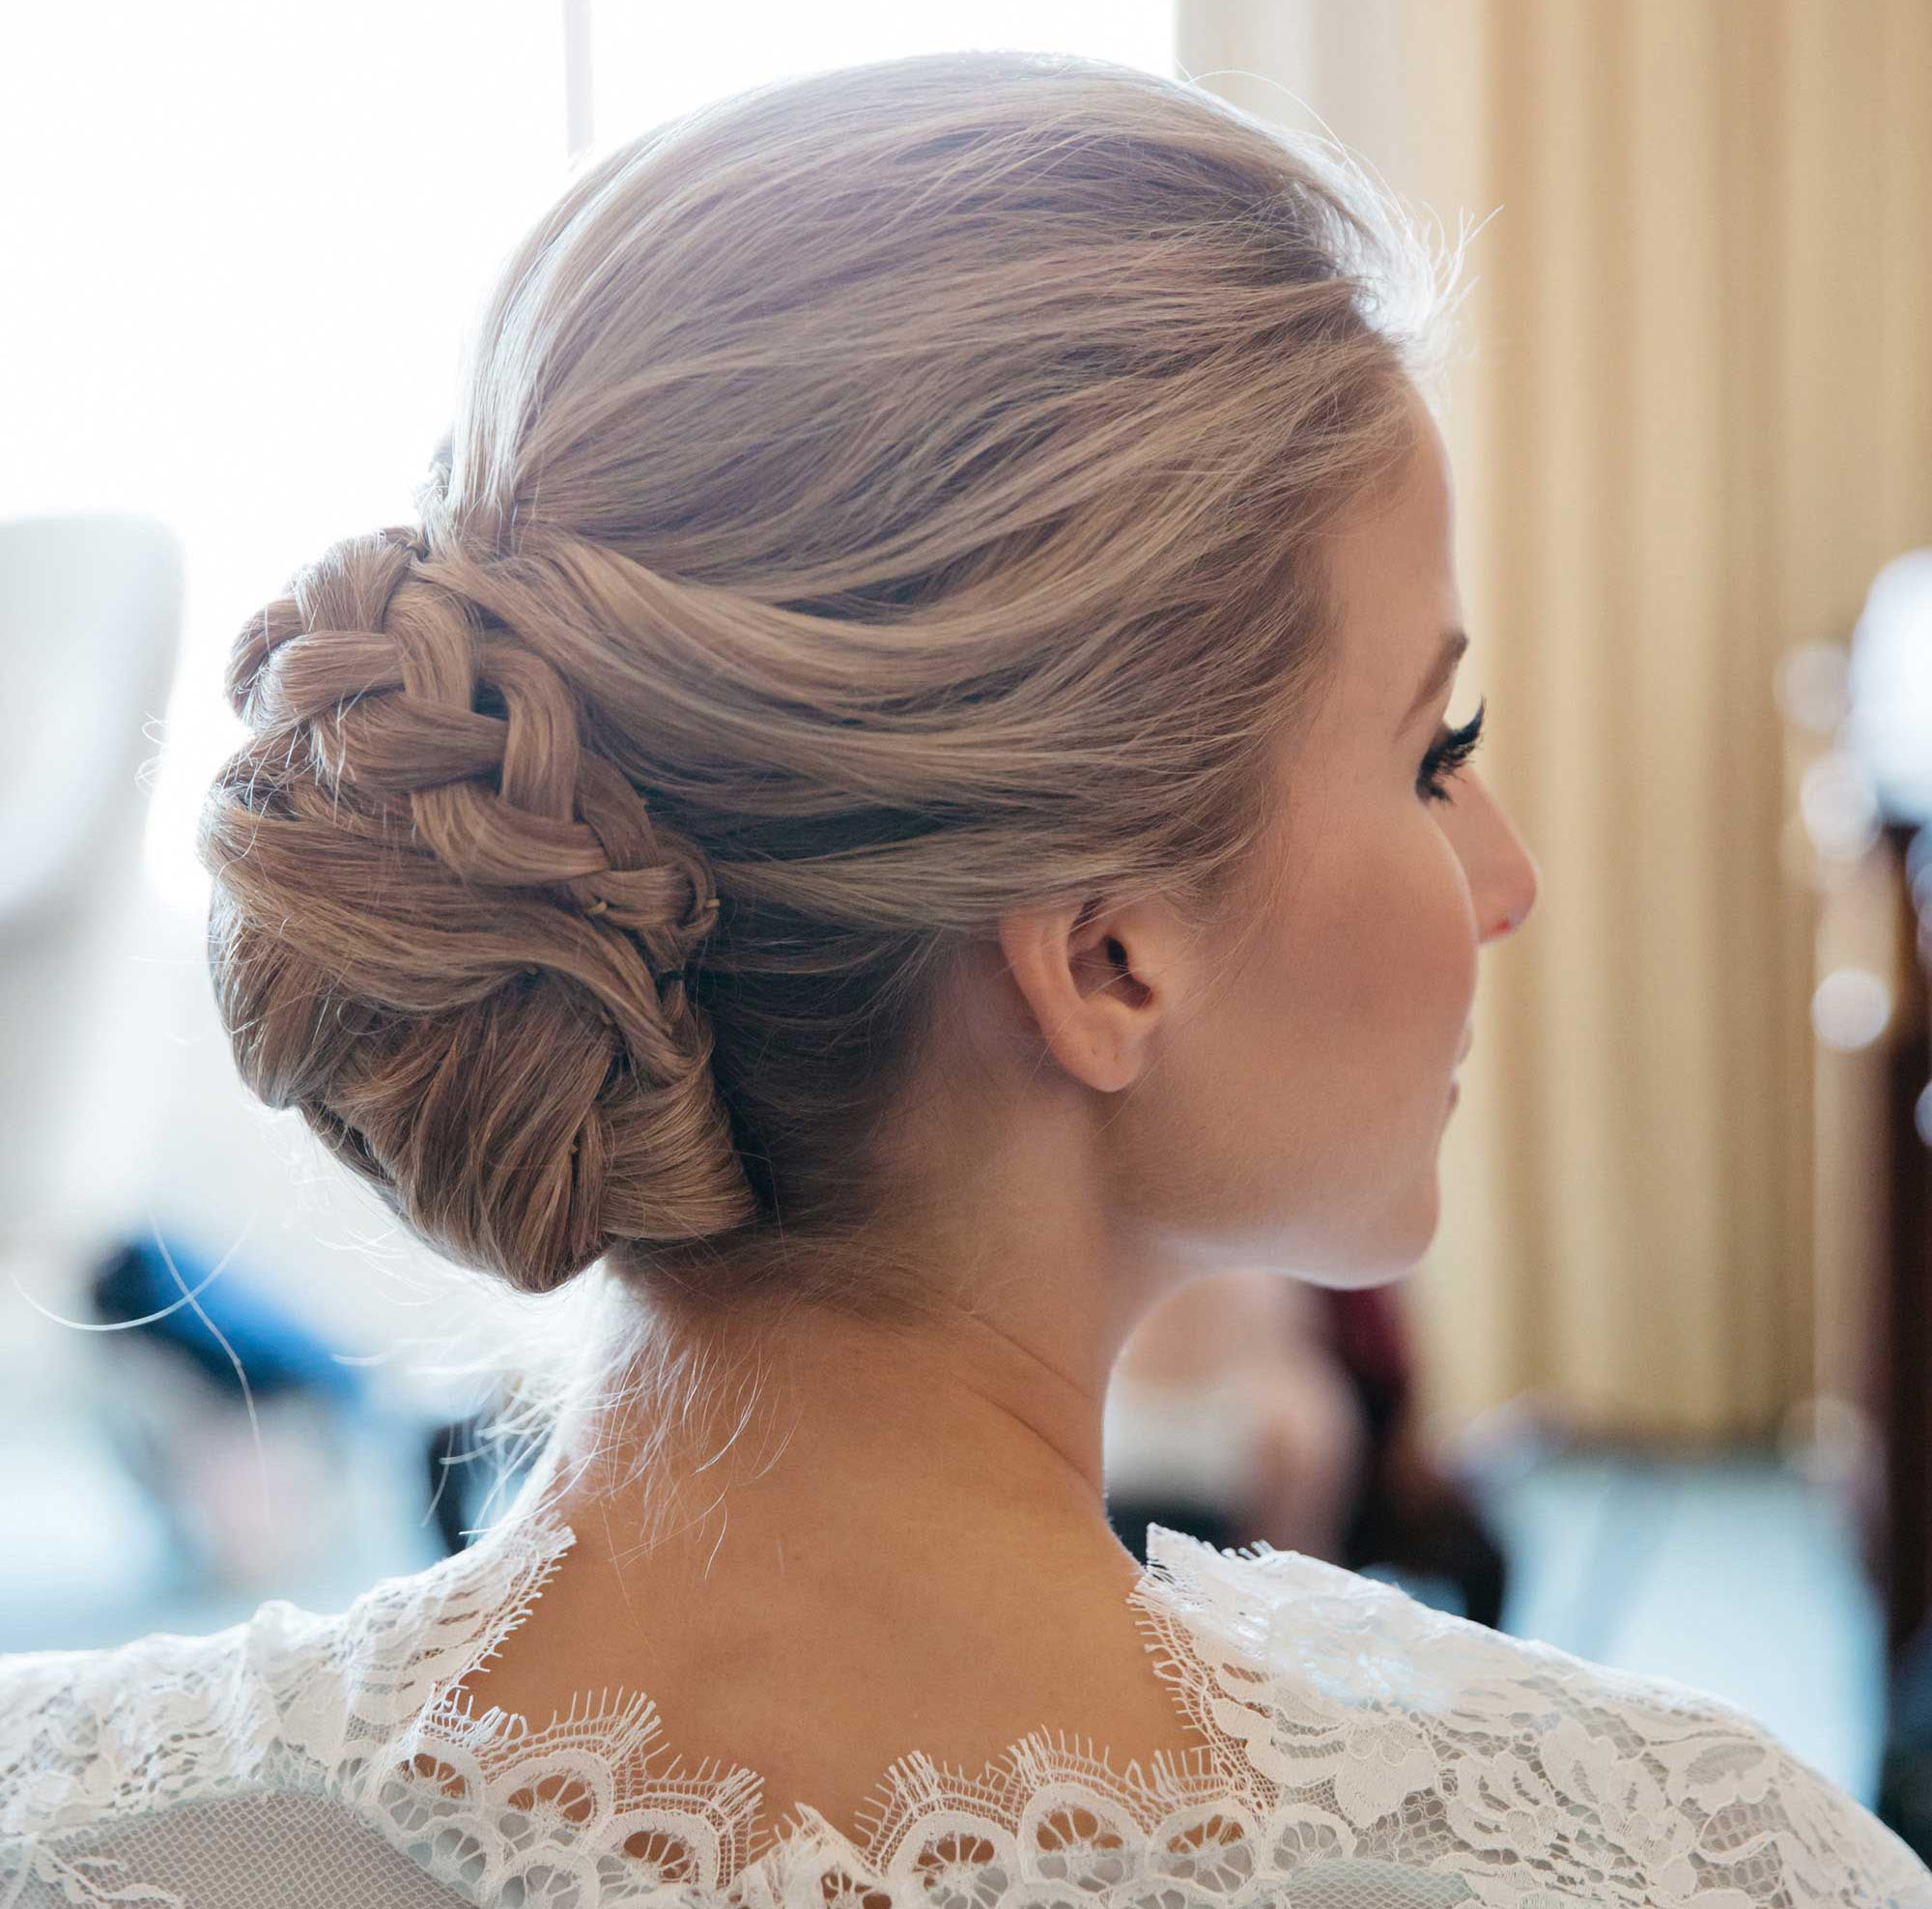 Astonishing Braided Hairstyles 5 Ideas For Your Wedding Look Inside Weddings Hairstyles For Men Maxibearus